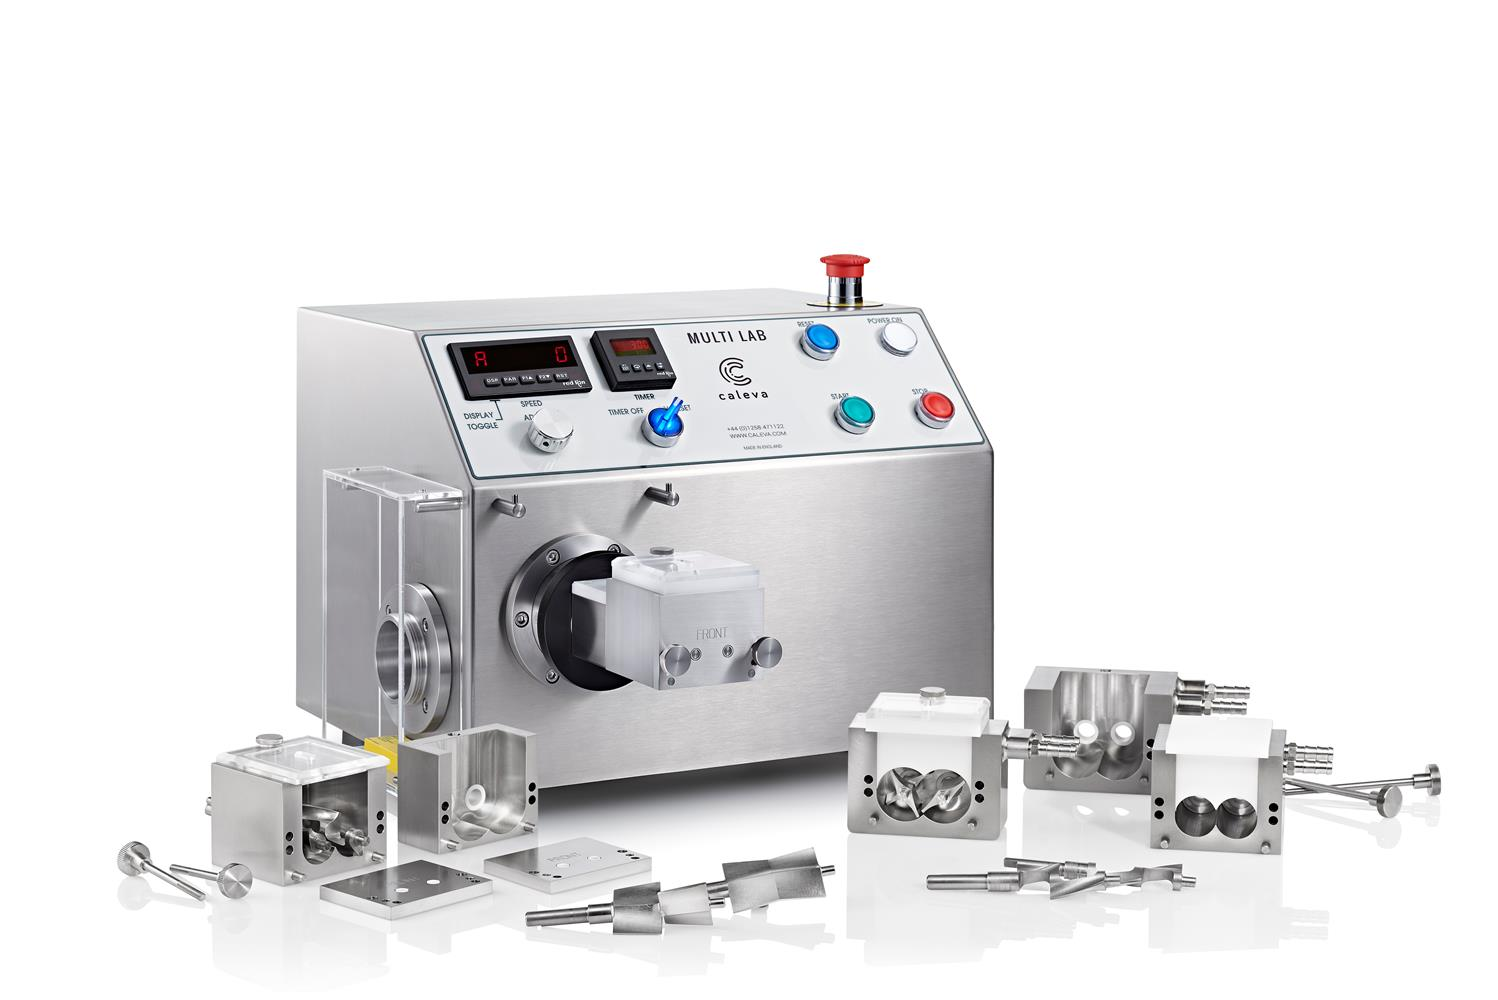 The Caleva mixer granulator blender with different mixing bowl sizes and blade configurations